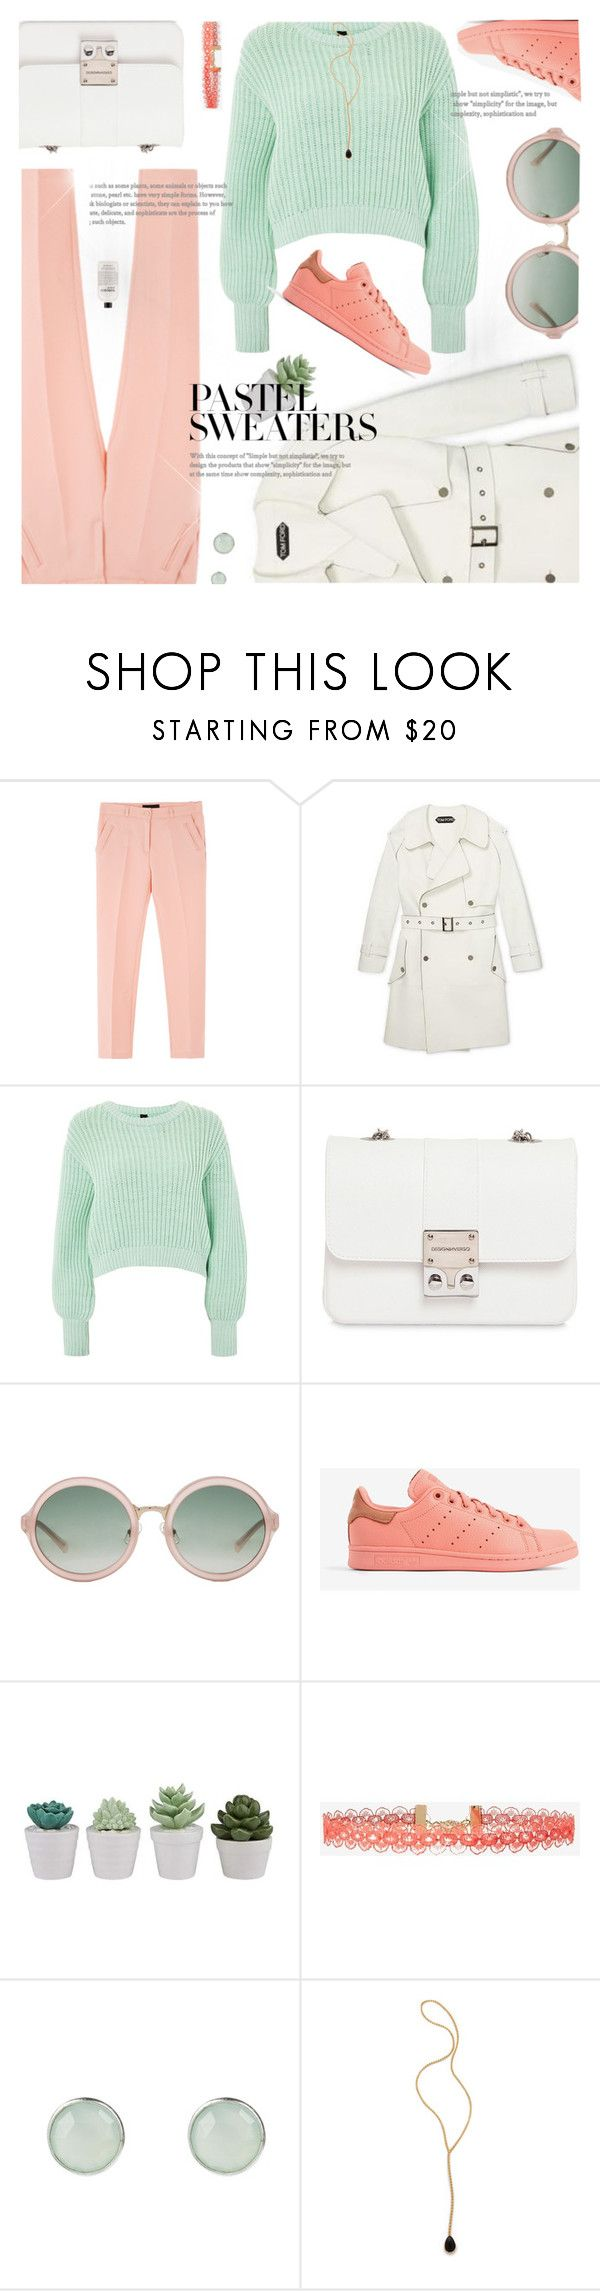 """""""Trench Coat Look"""" by jiabao-krohn on Polyvore featuring Topshop, Design Inverso, 3.1 Phillip Lim, adidas, Express, Jacquie Aiche, philosophy, pastel, trenchcoat and pastelsweaters"""